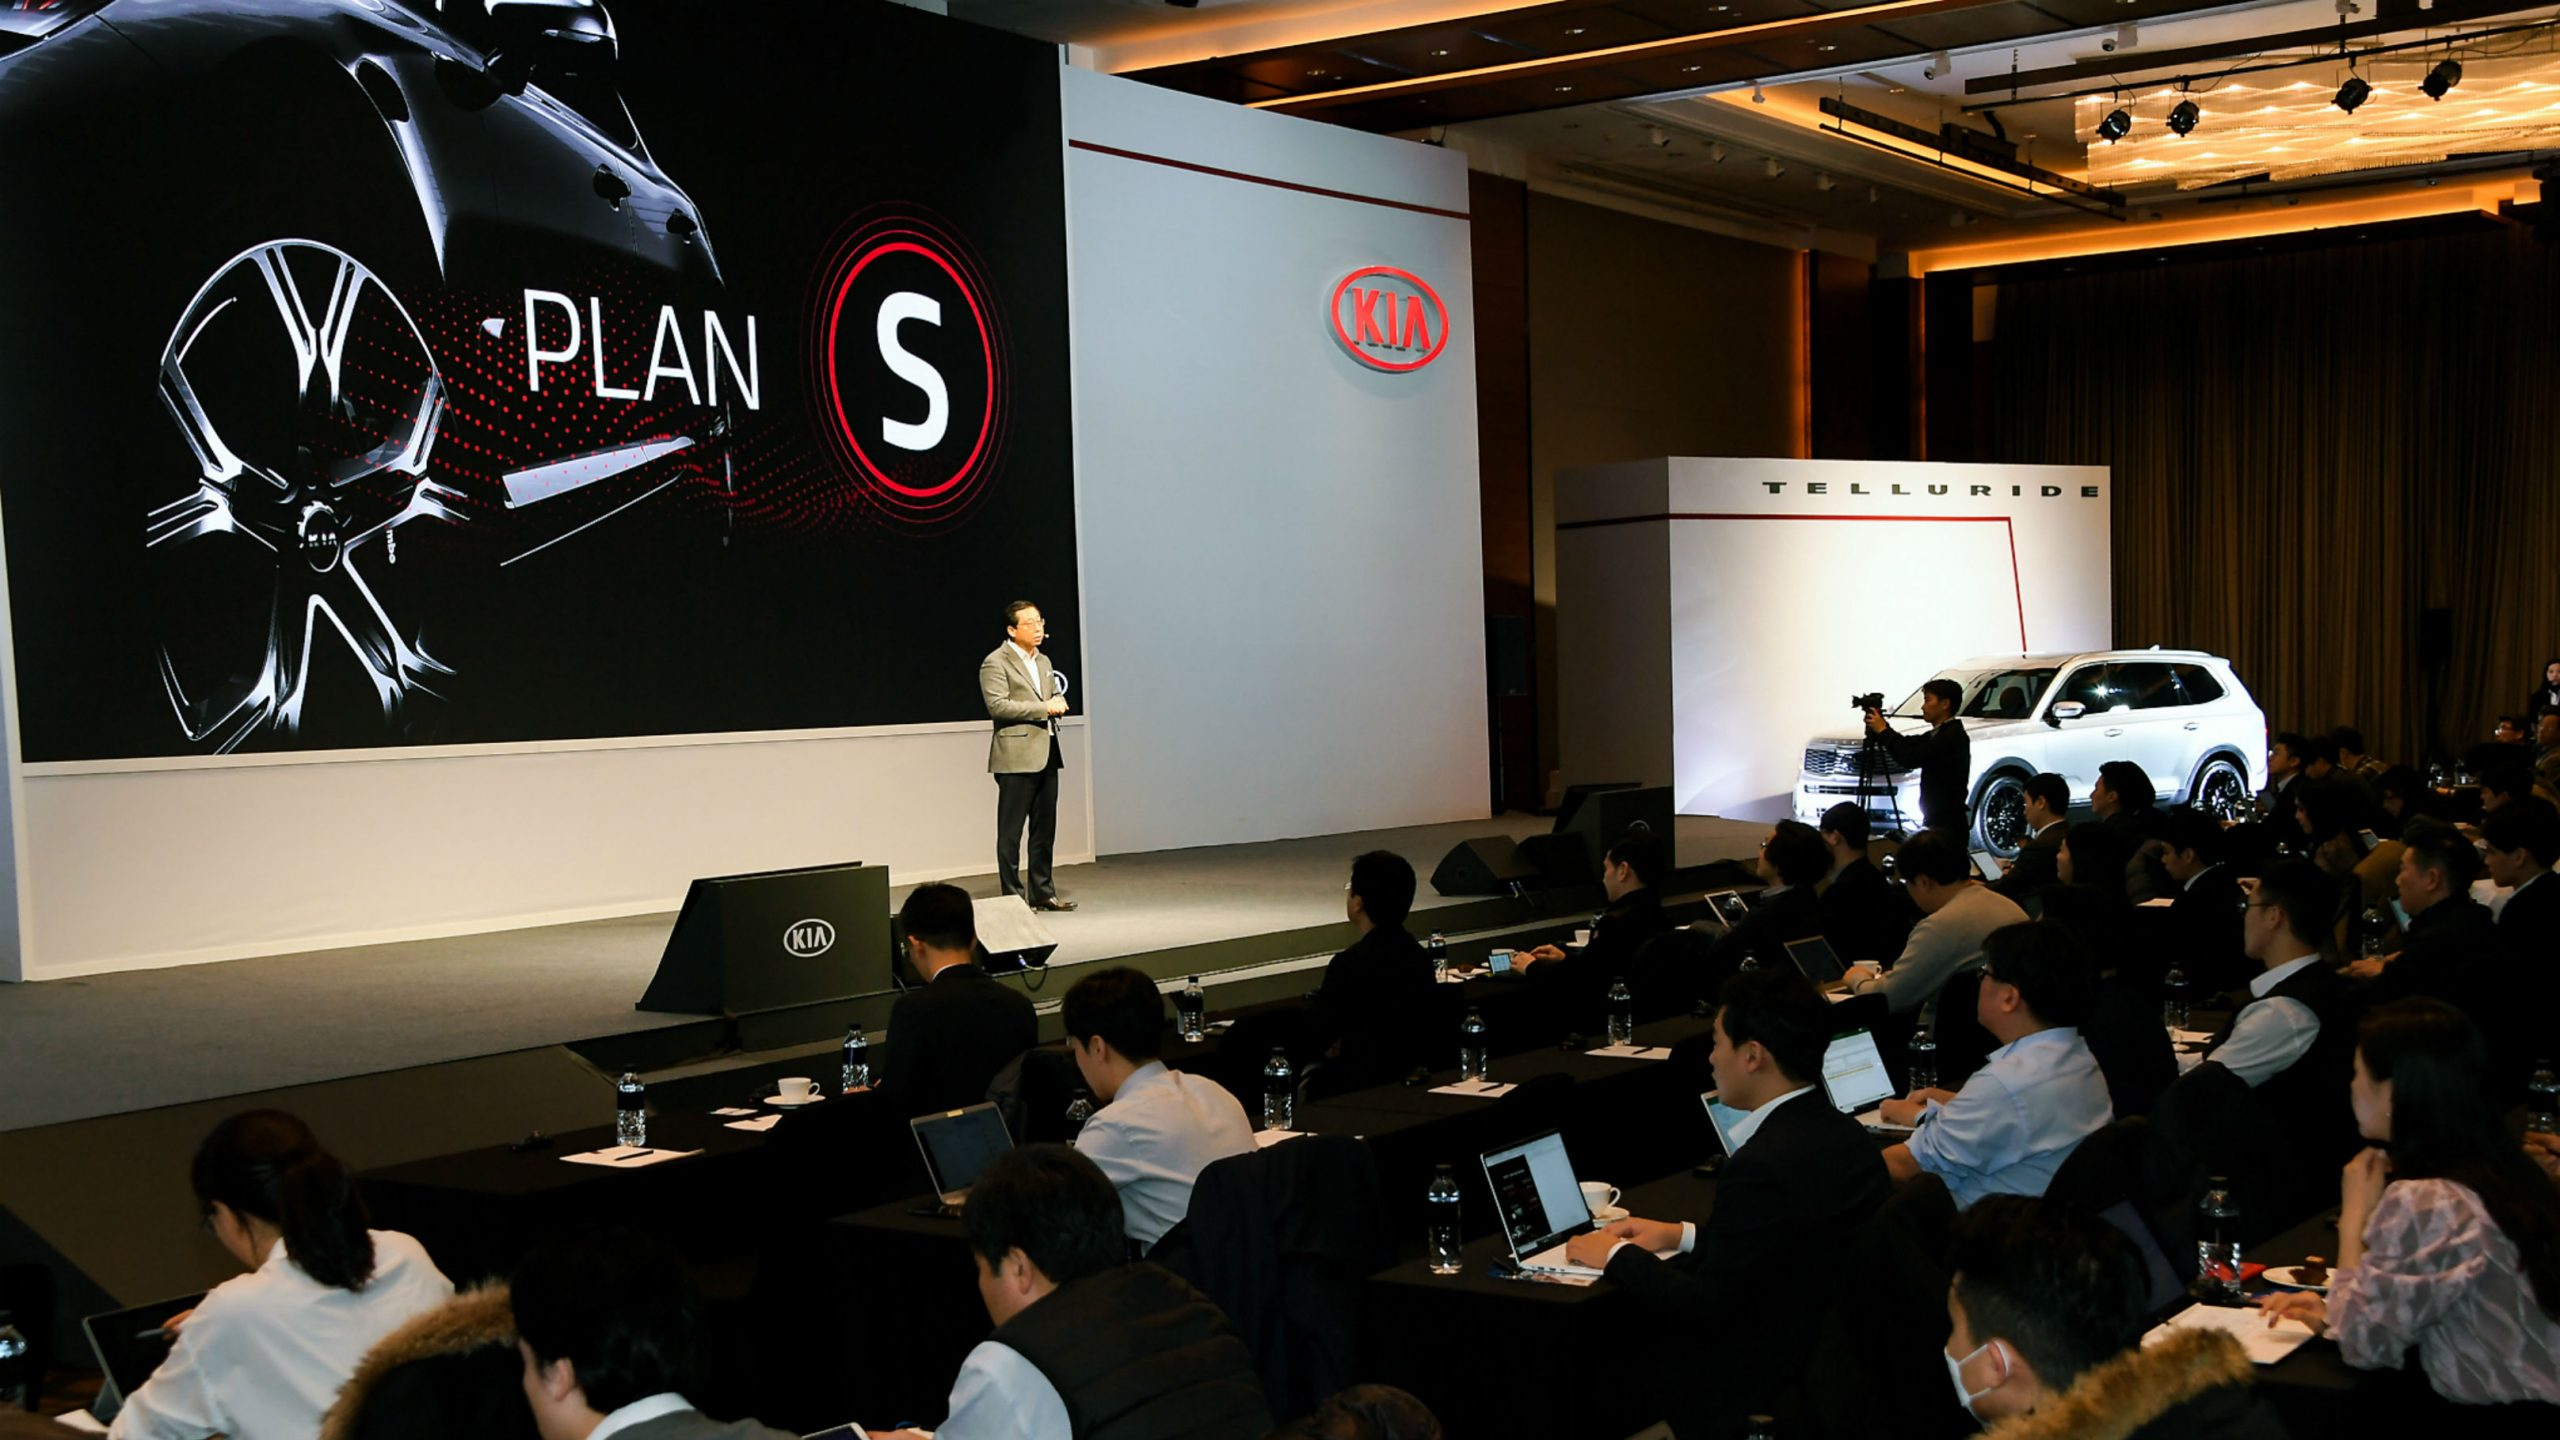 Kia Announces Big Plan S